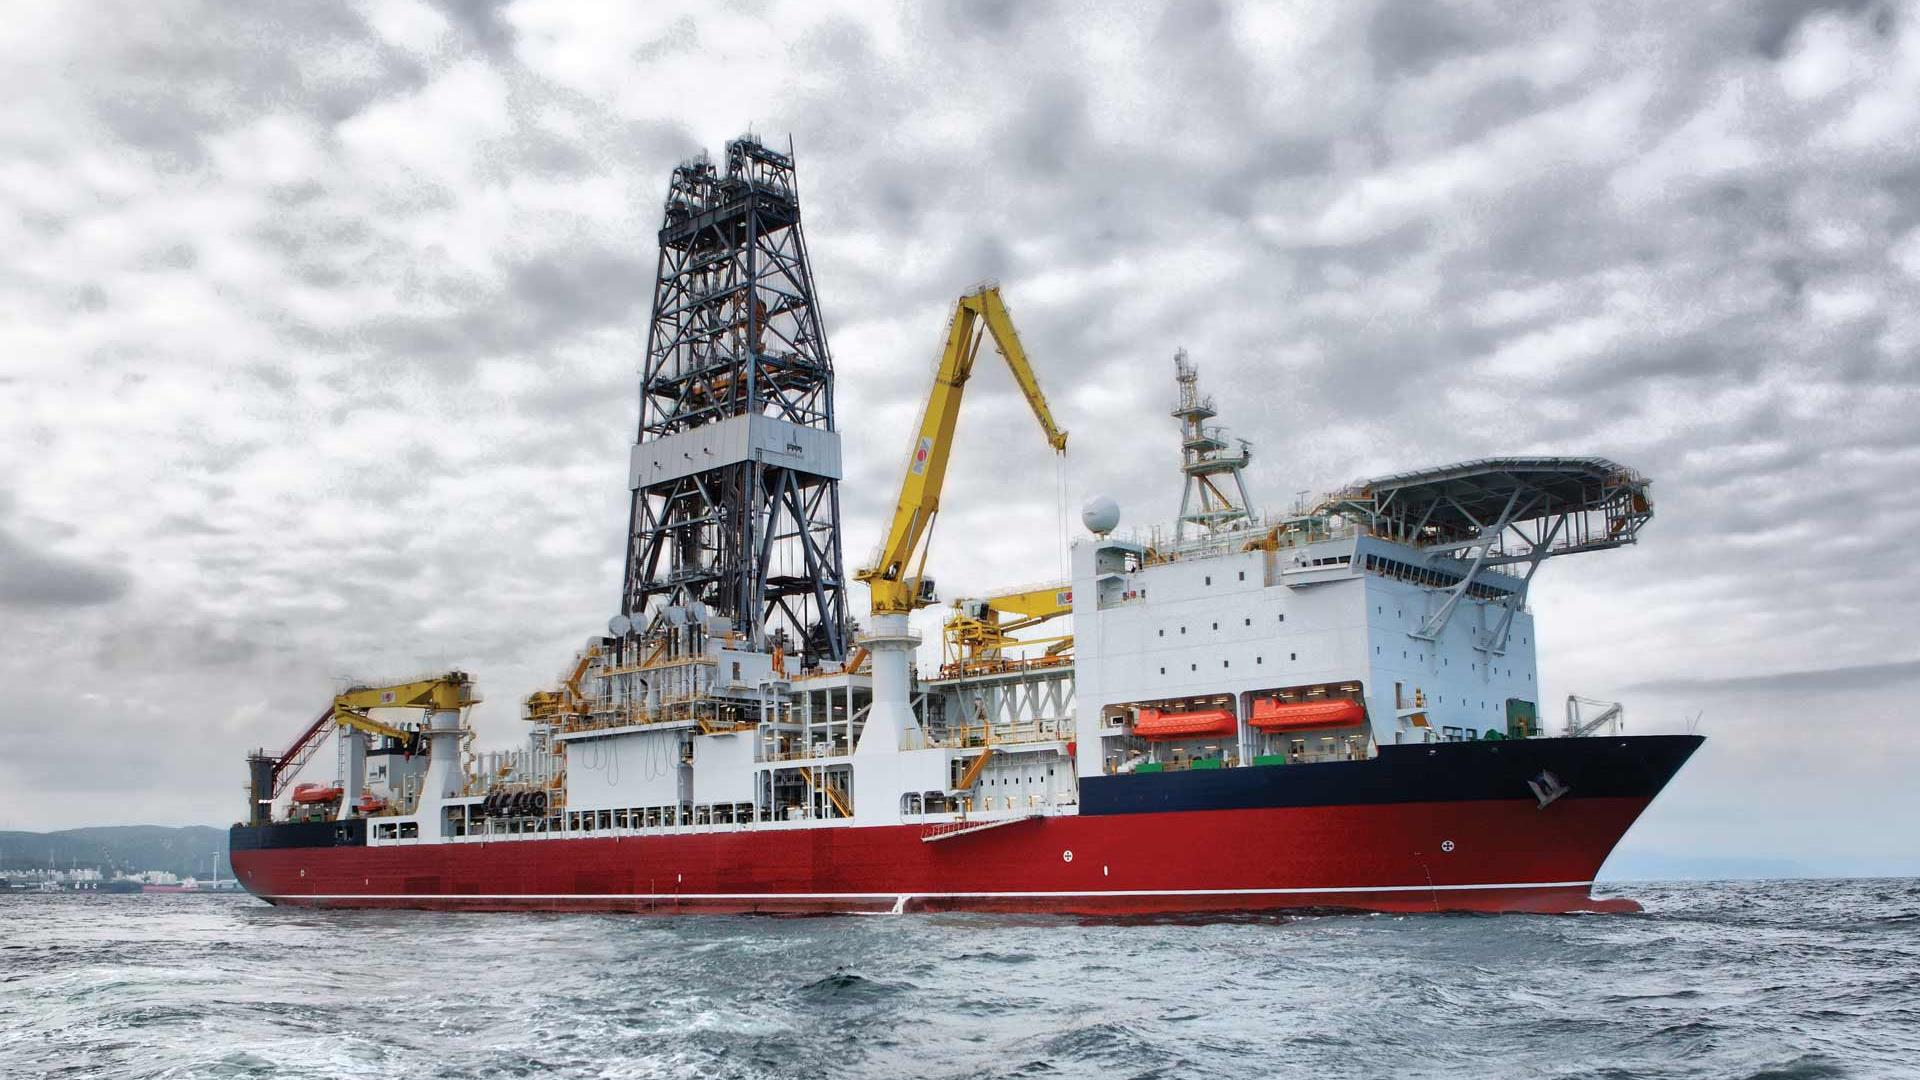 A rig ship on the North Sea